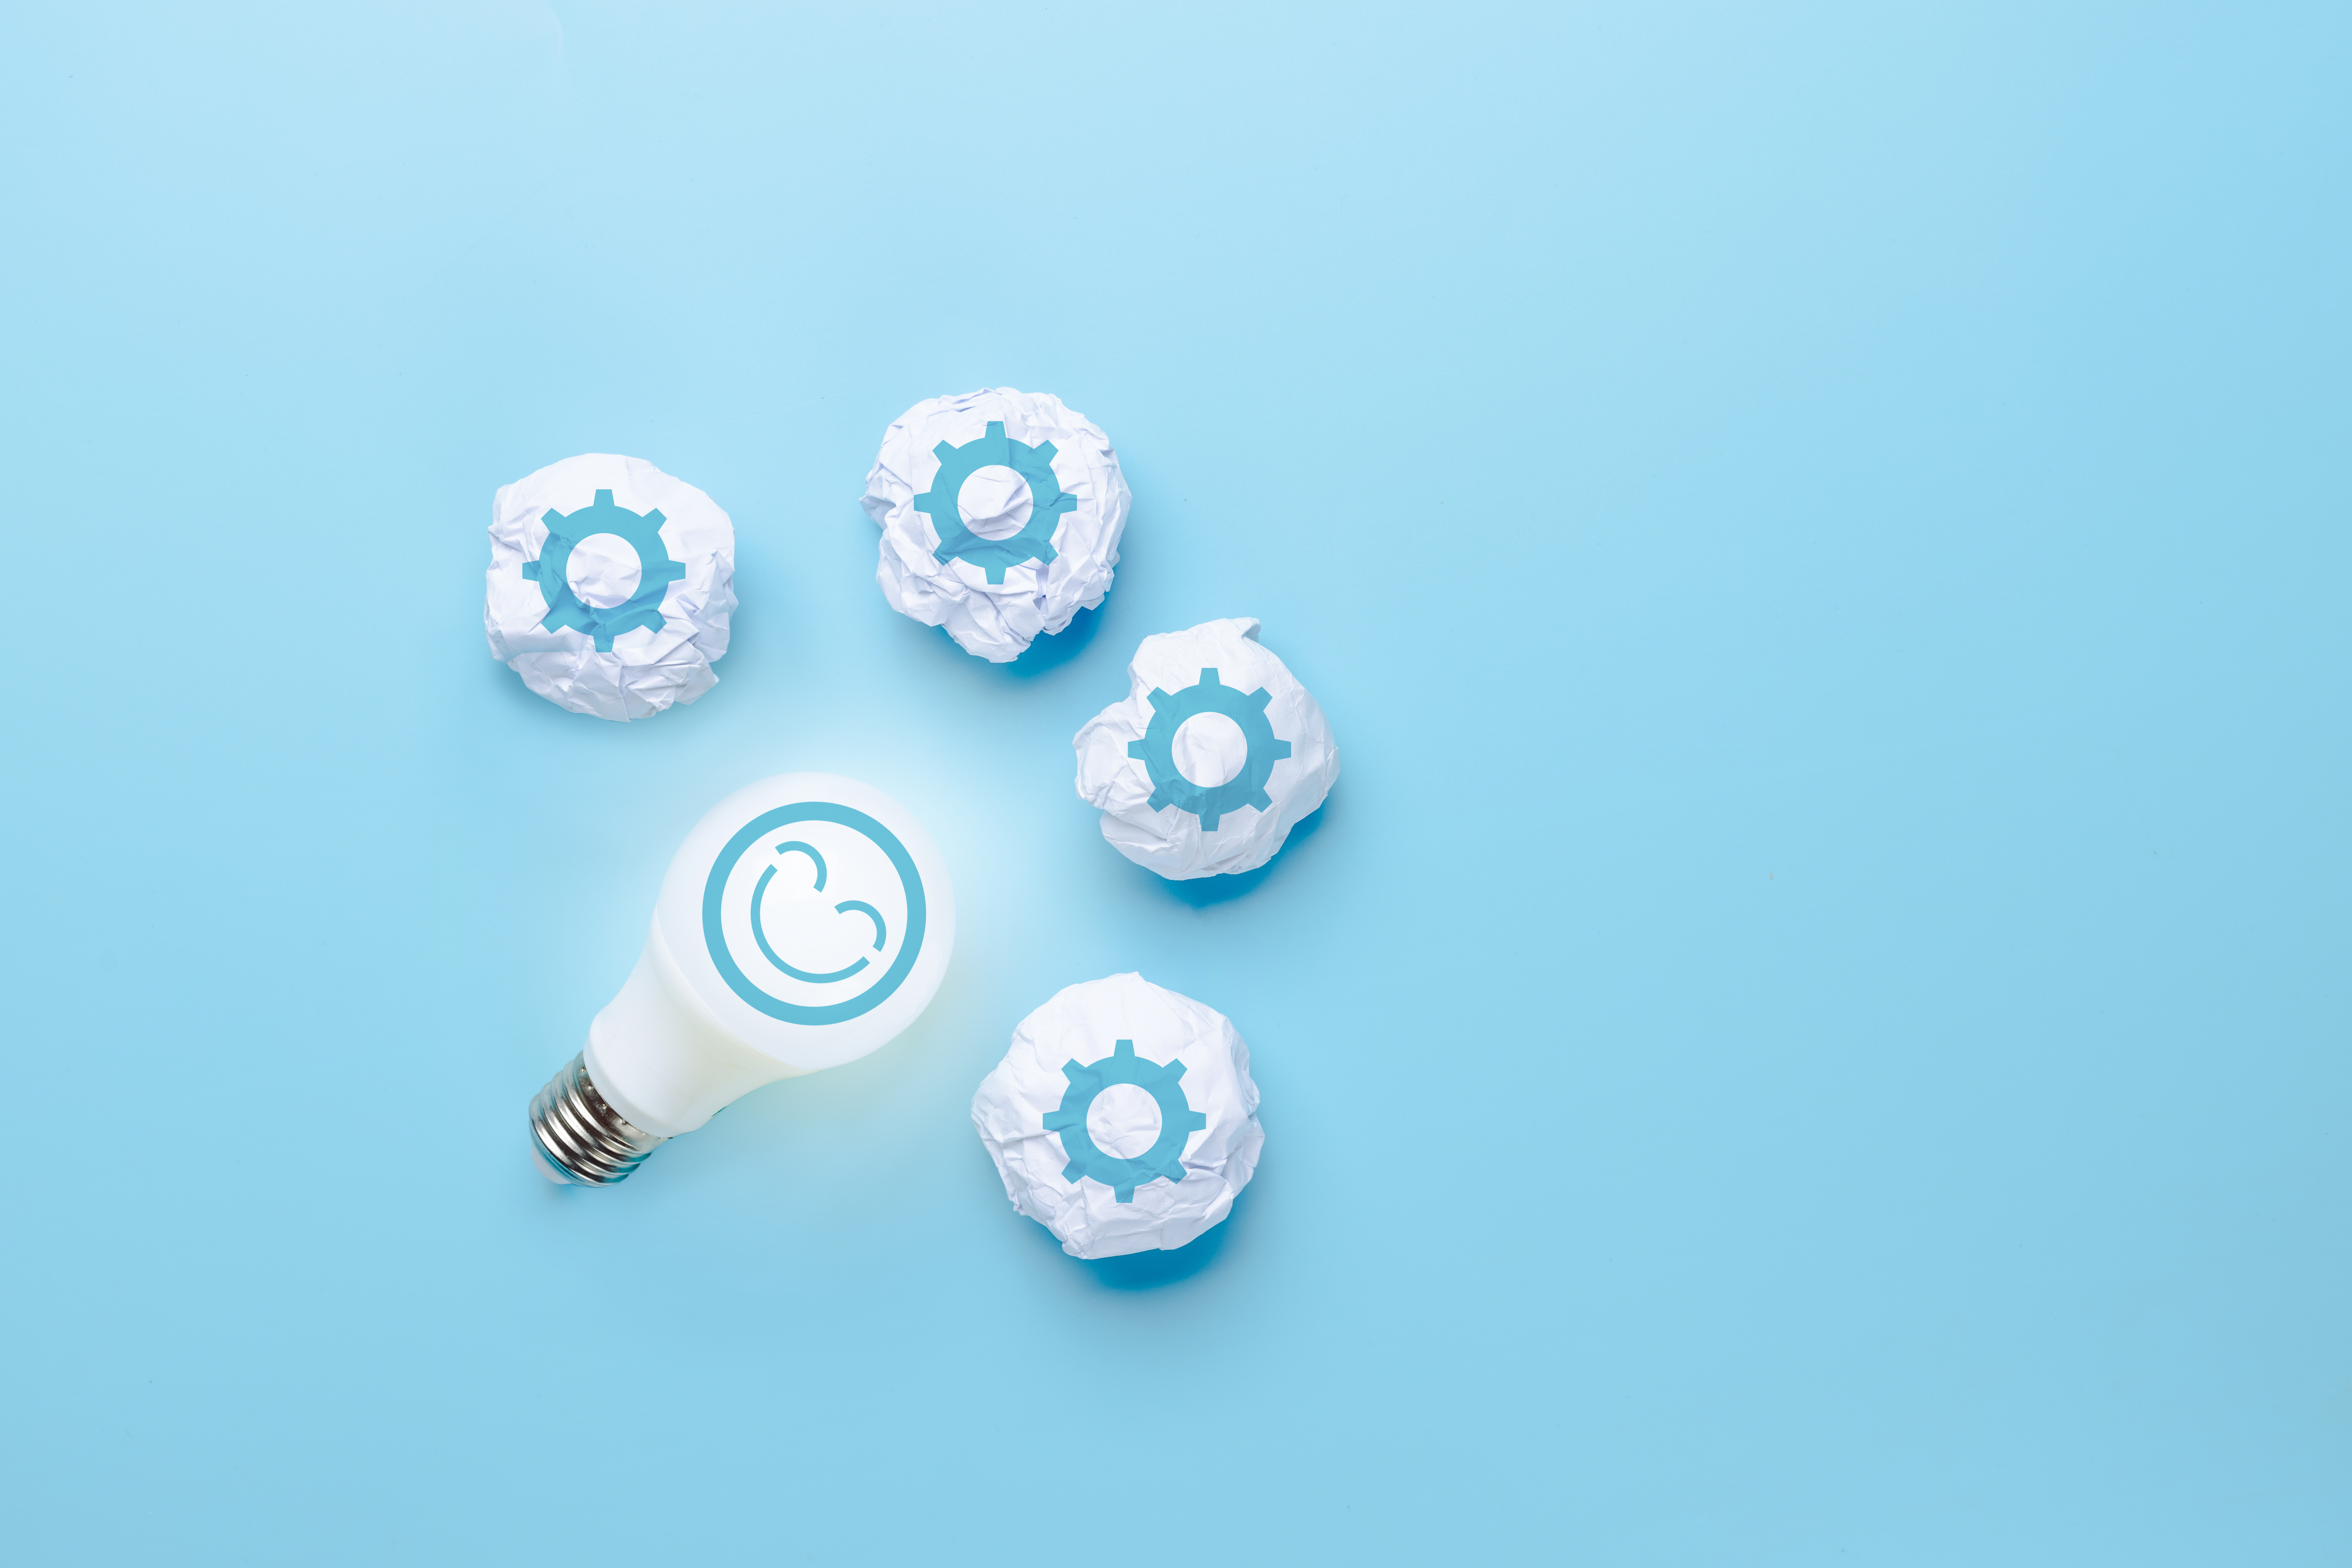 Idea and creative innovation with face smile icon and light bulb